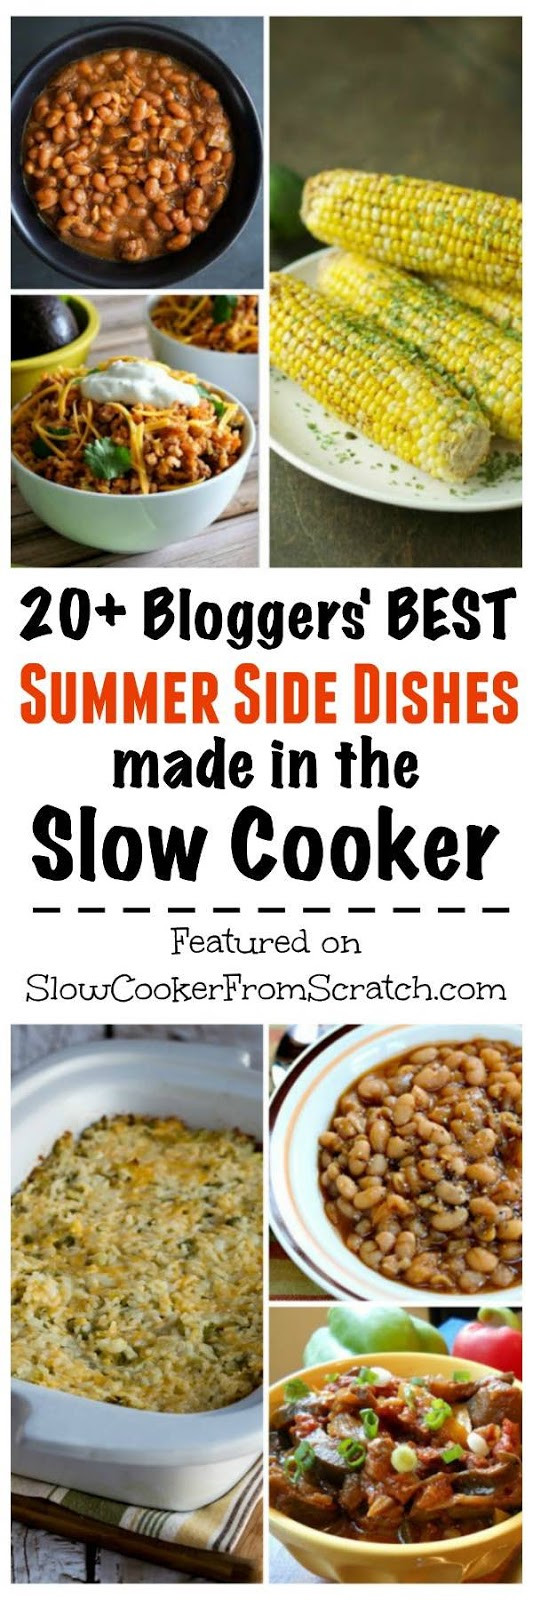 Best Summer Side Dishes  Slow Cooker from Scratch 20 Bloggers Best Summer Side